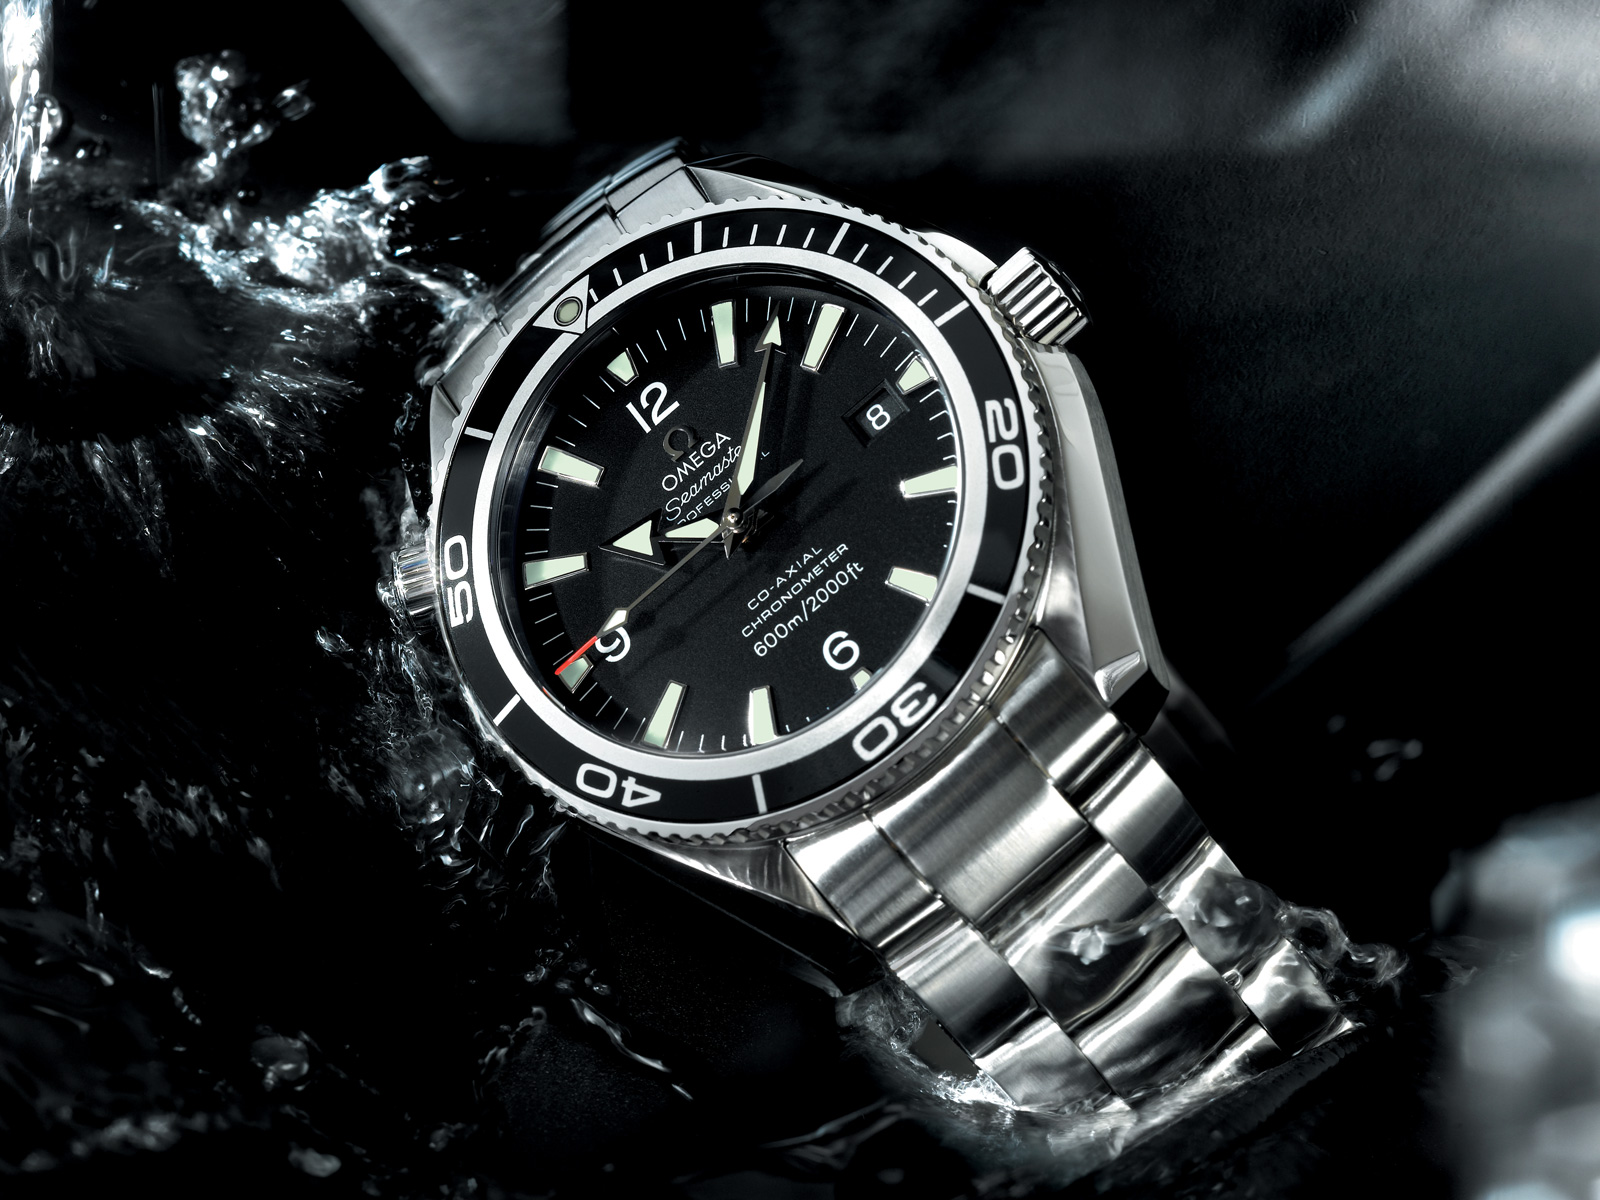 James Bond Quantum Of Solace  Omega Seamaster Watch